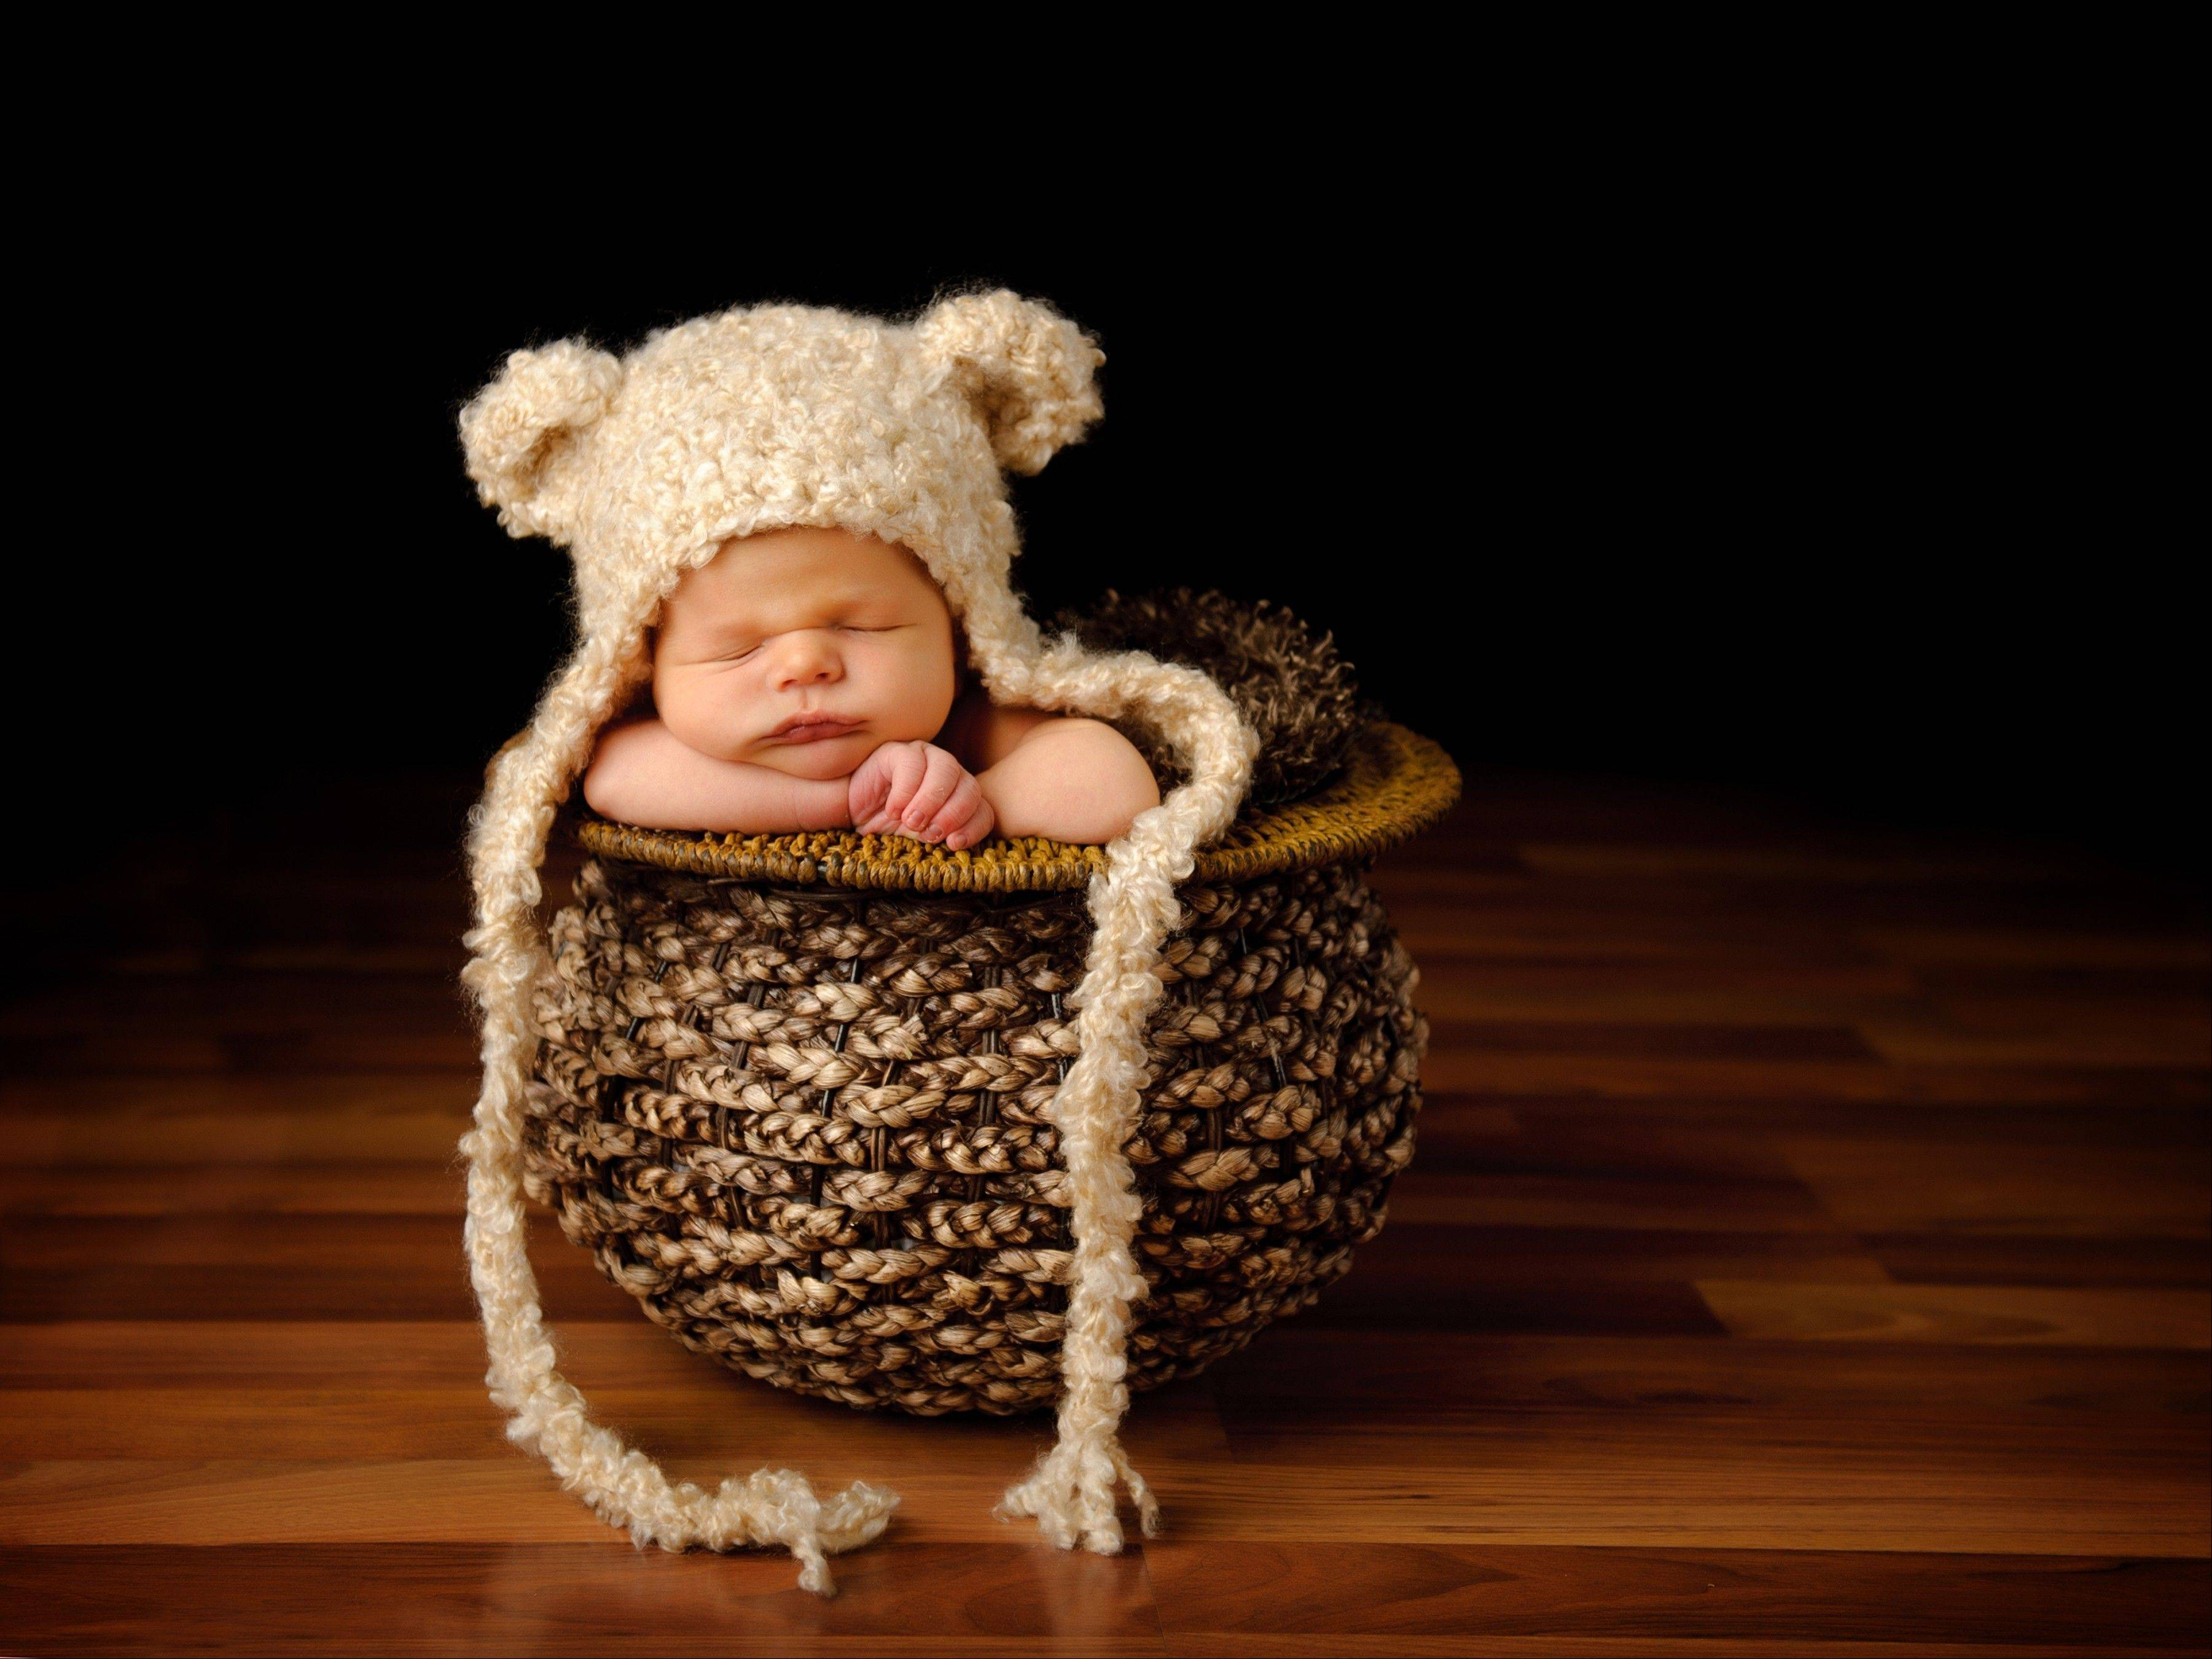 Colton, son of Allison and Dale of Wheaton, is as snug as a bear in a basket.